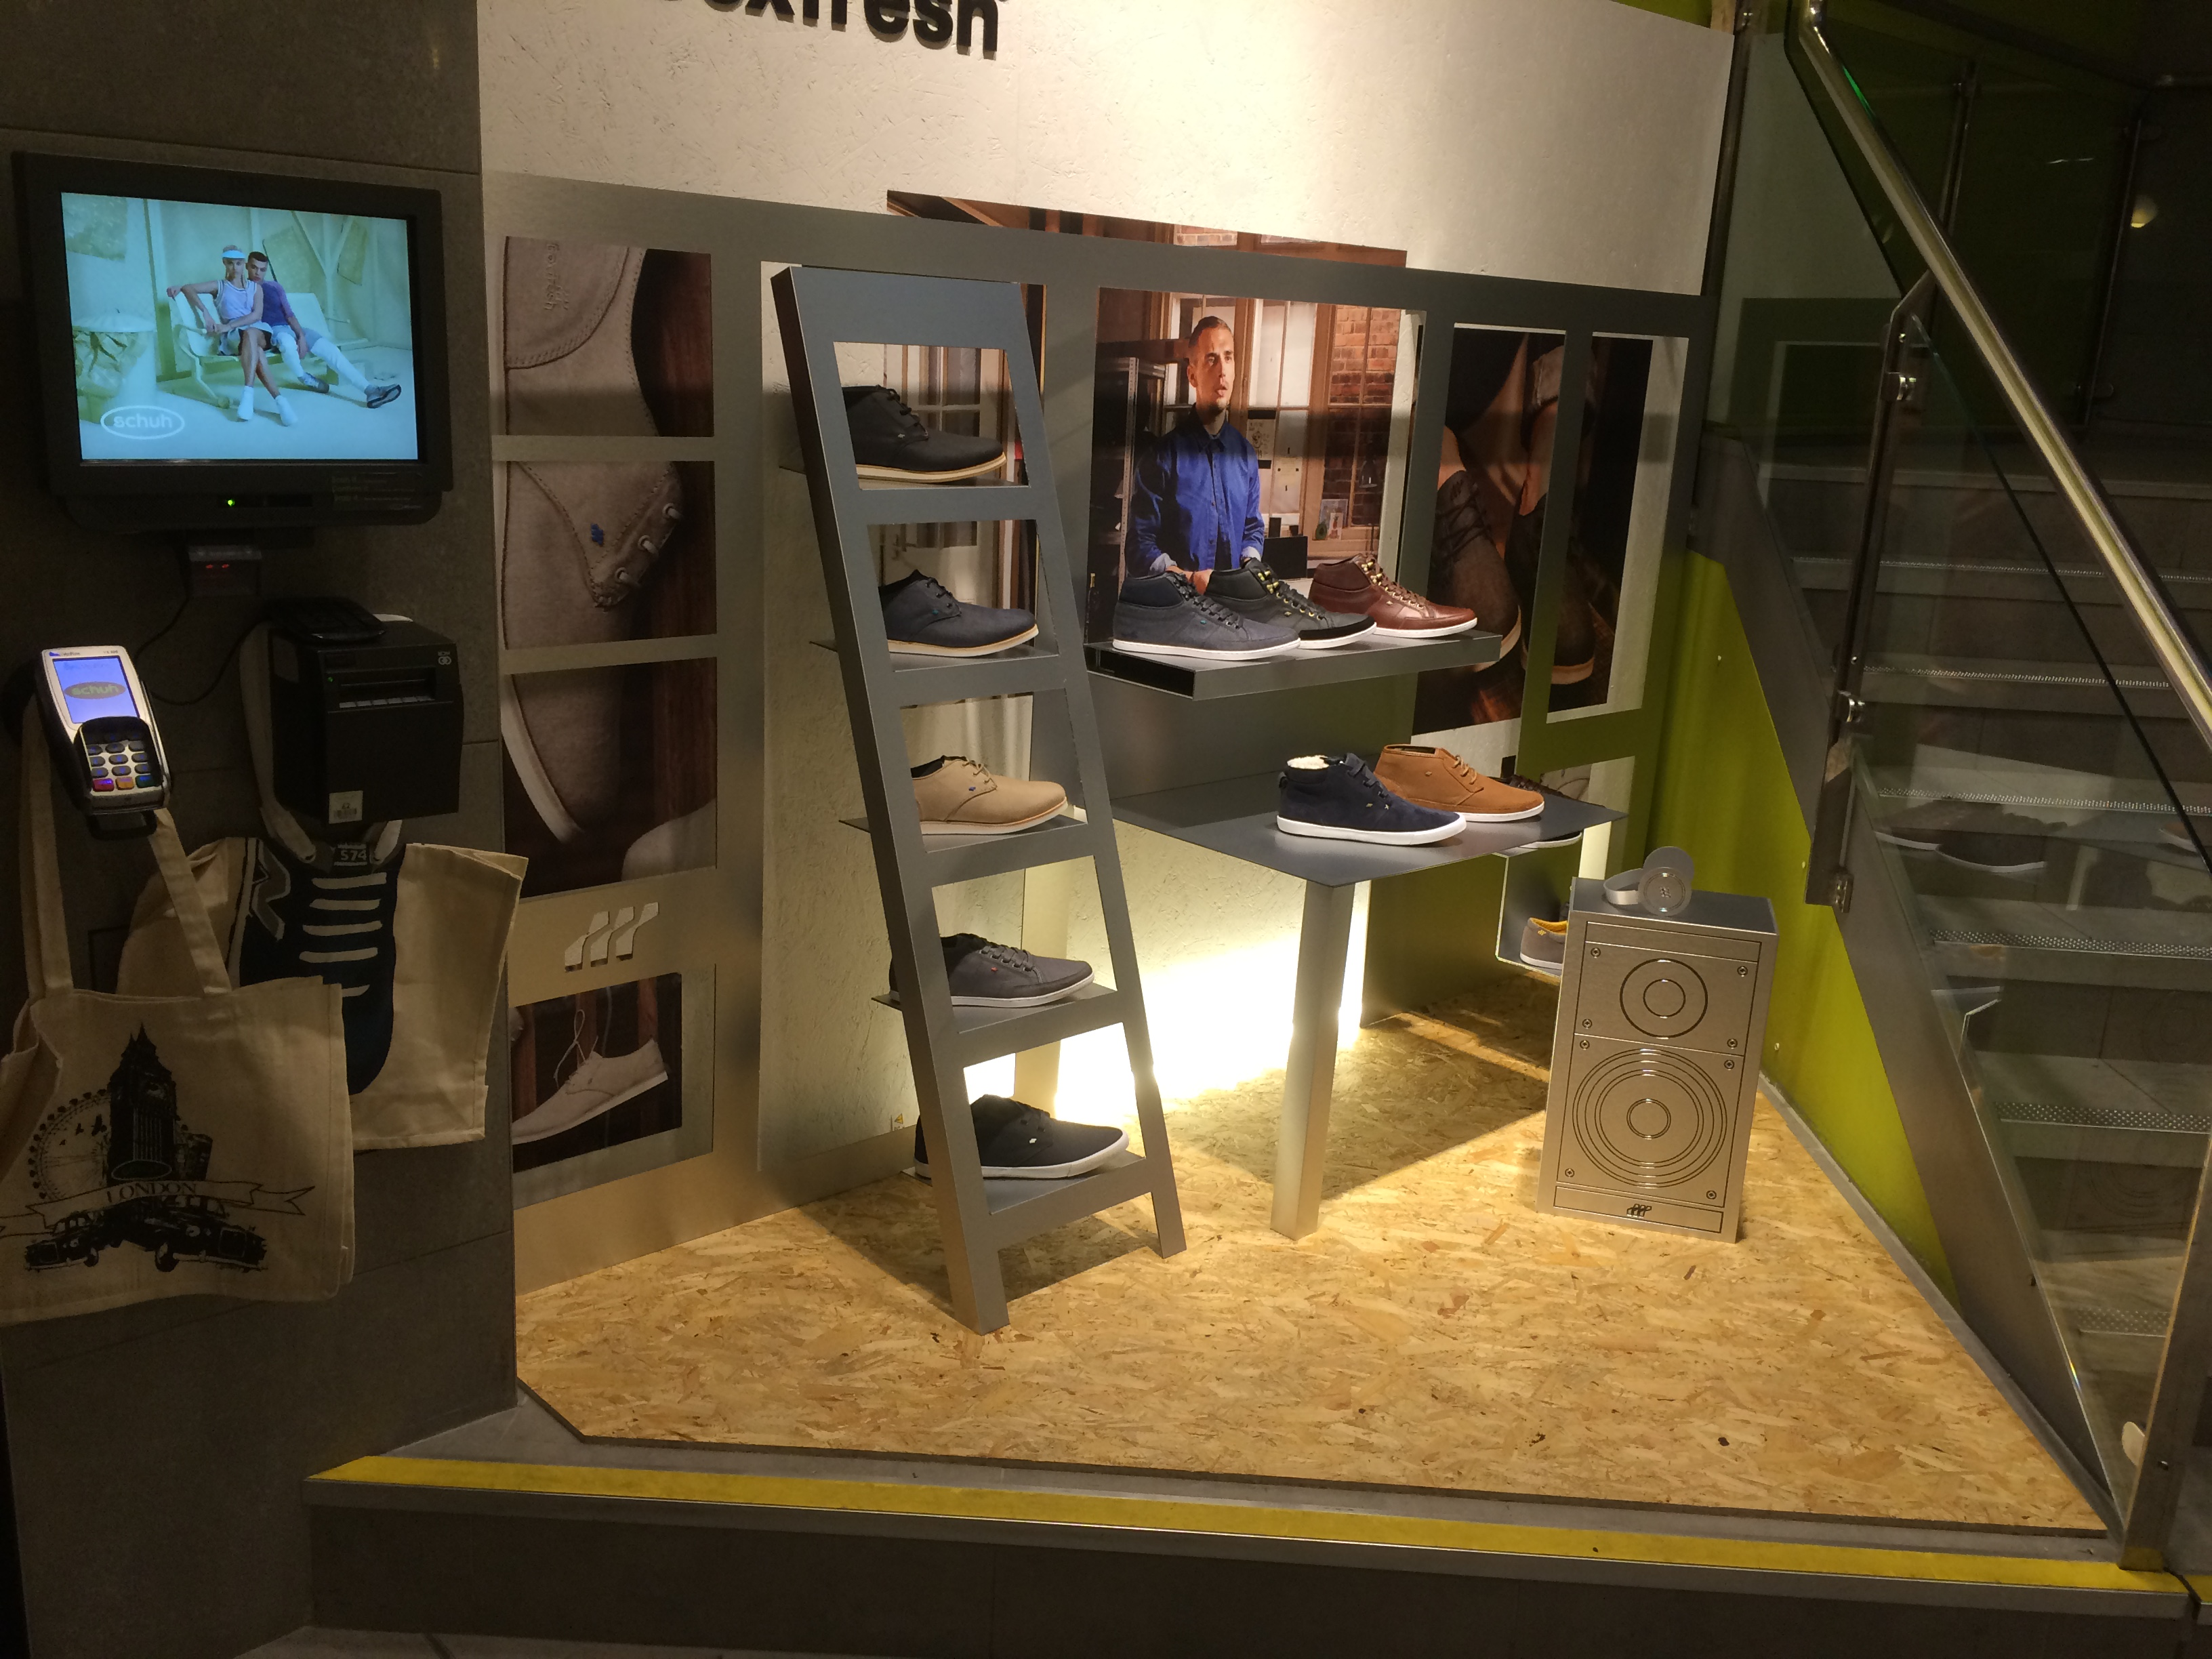 Boxfresh Footwear Display folded dibond and oriented strand board floor with LED backlighting.